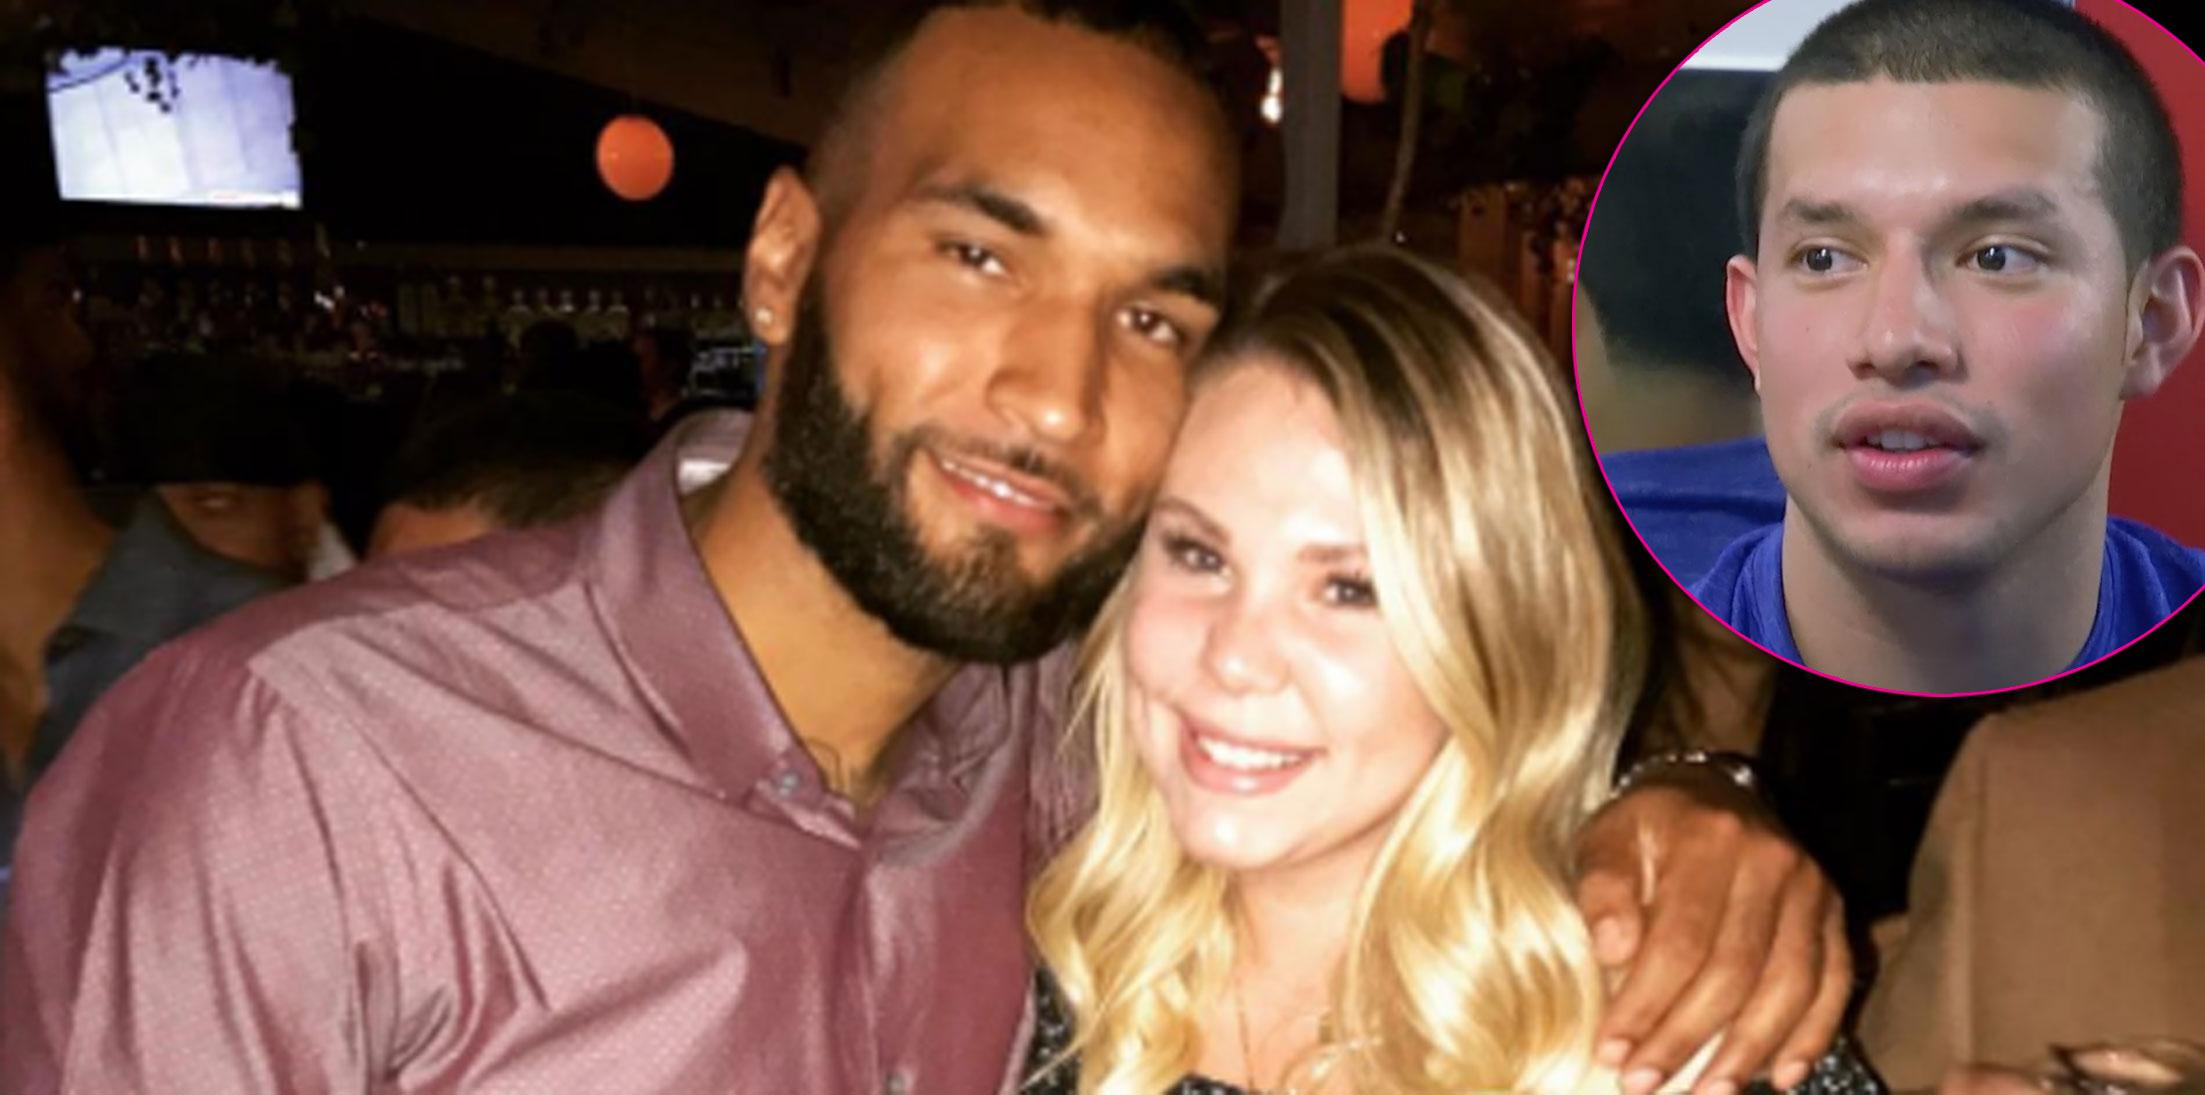 kailyn lowry new man javi marroquin marriage boot camp pics long